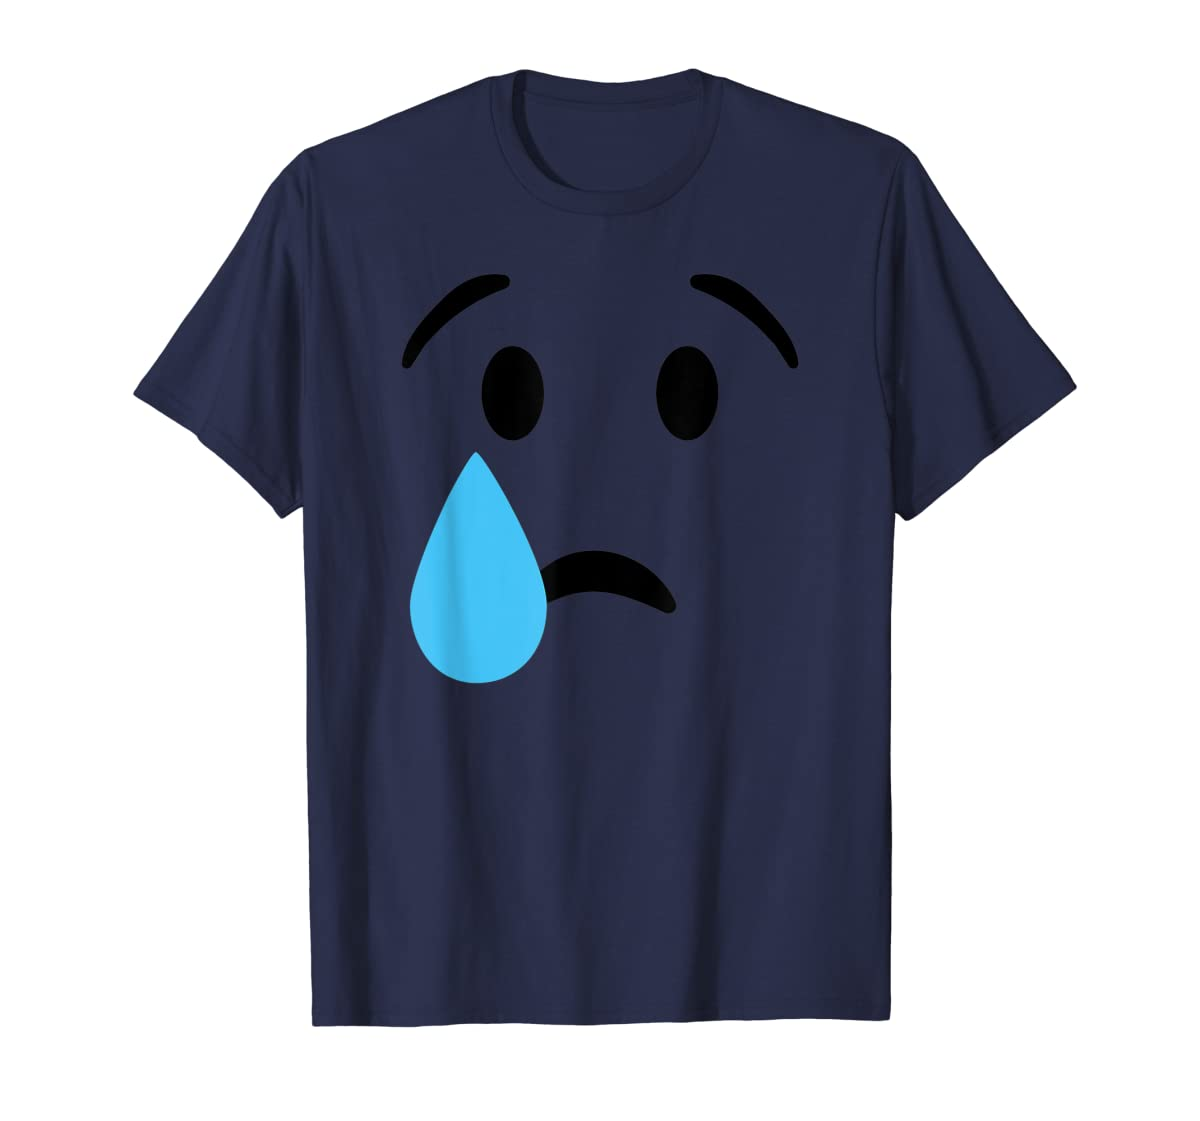 Sad Crying Tear Eyes Face Emojis Emoticon Halloween Costume T-Shirt-Men's T-Shirt-Navy